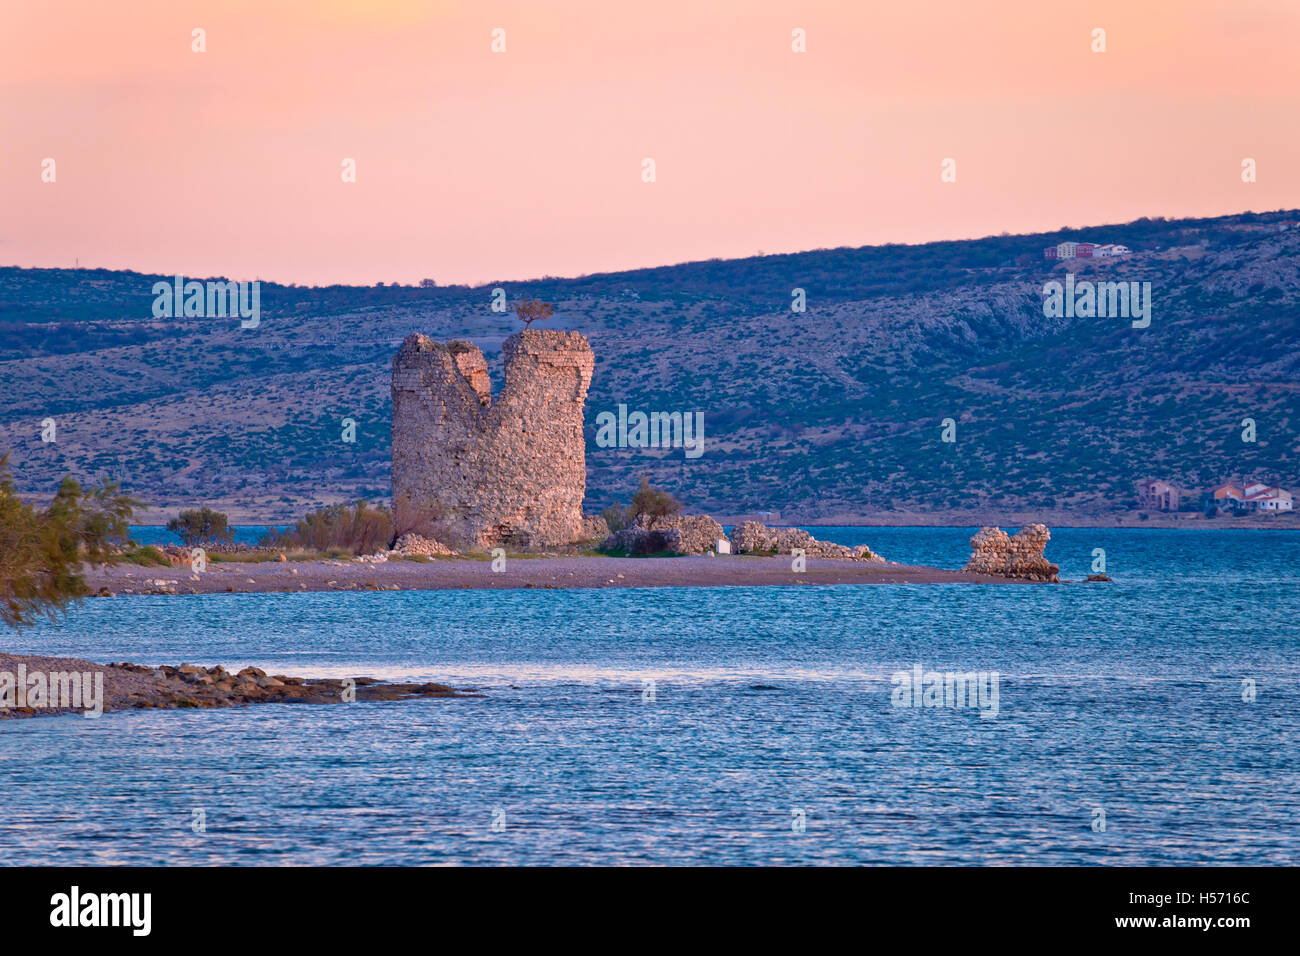 Starigrad Paklenica tower ruins by the sea, Dalmatia, Croatia - Stock Image